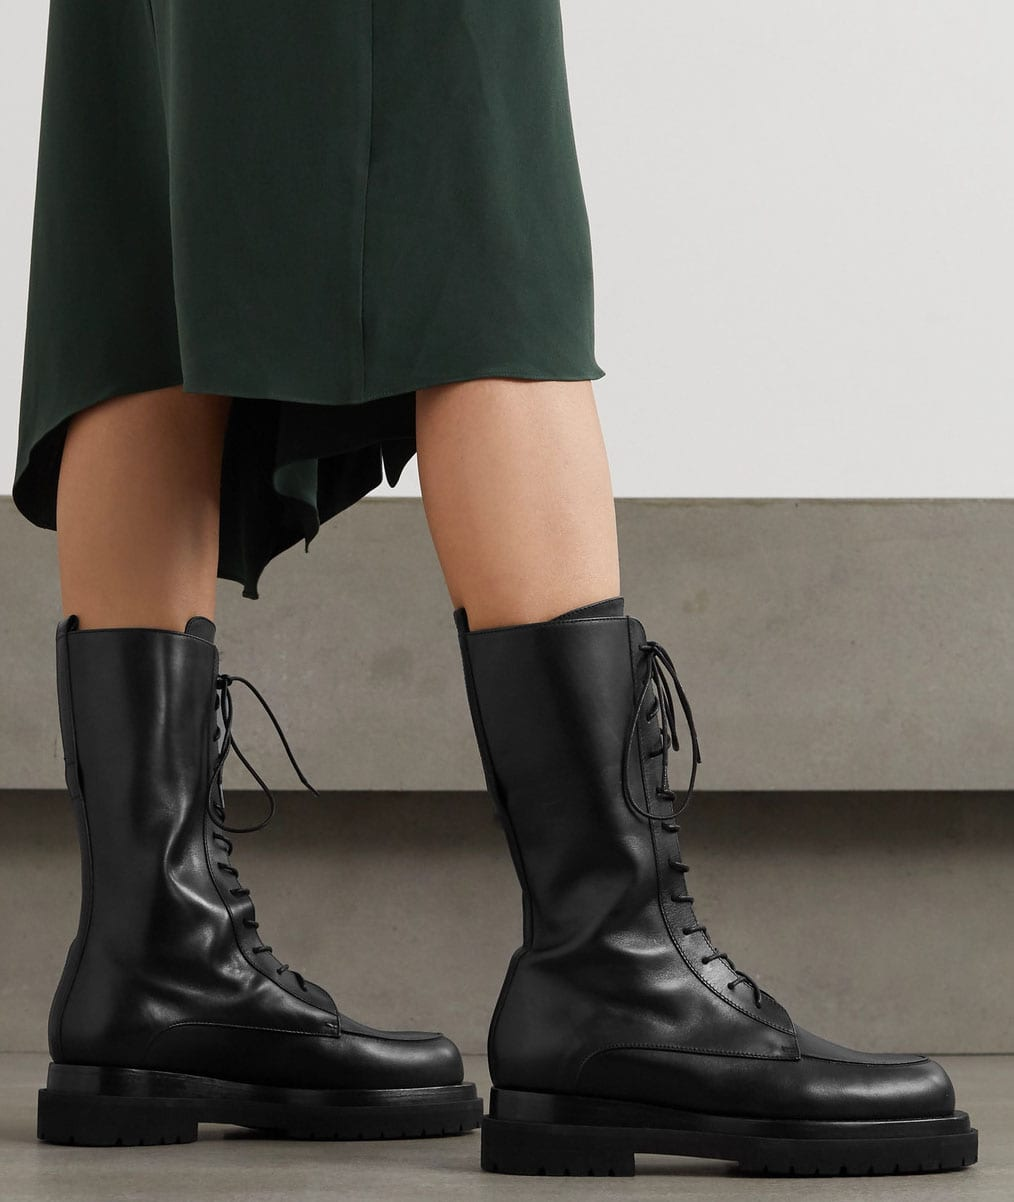 These chunky boots are also available in mid-calf length